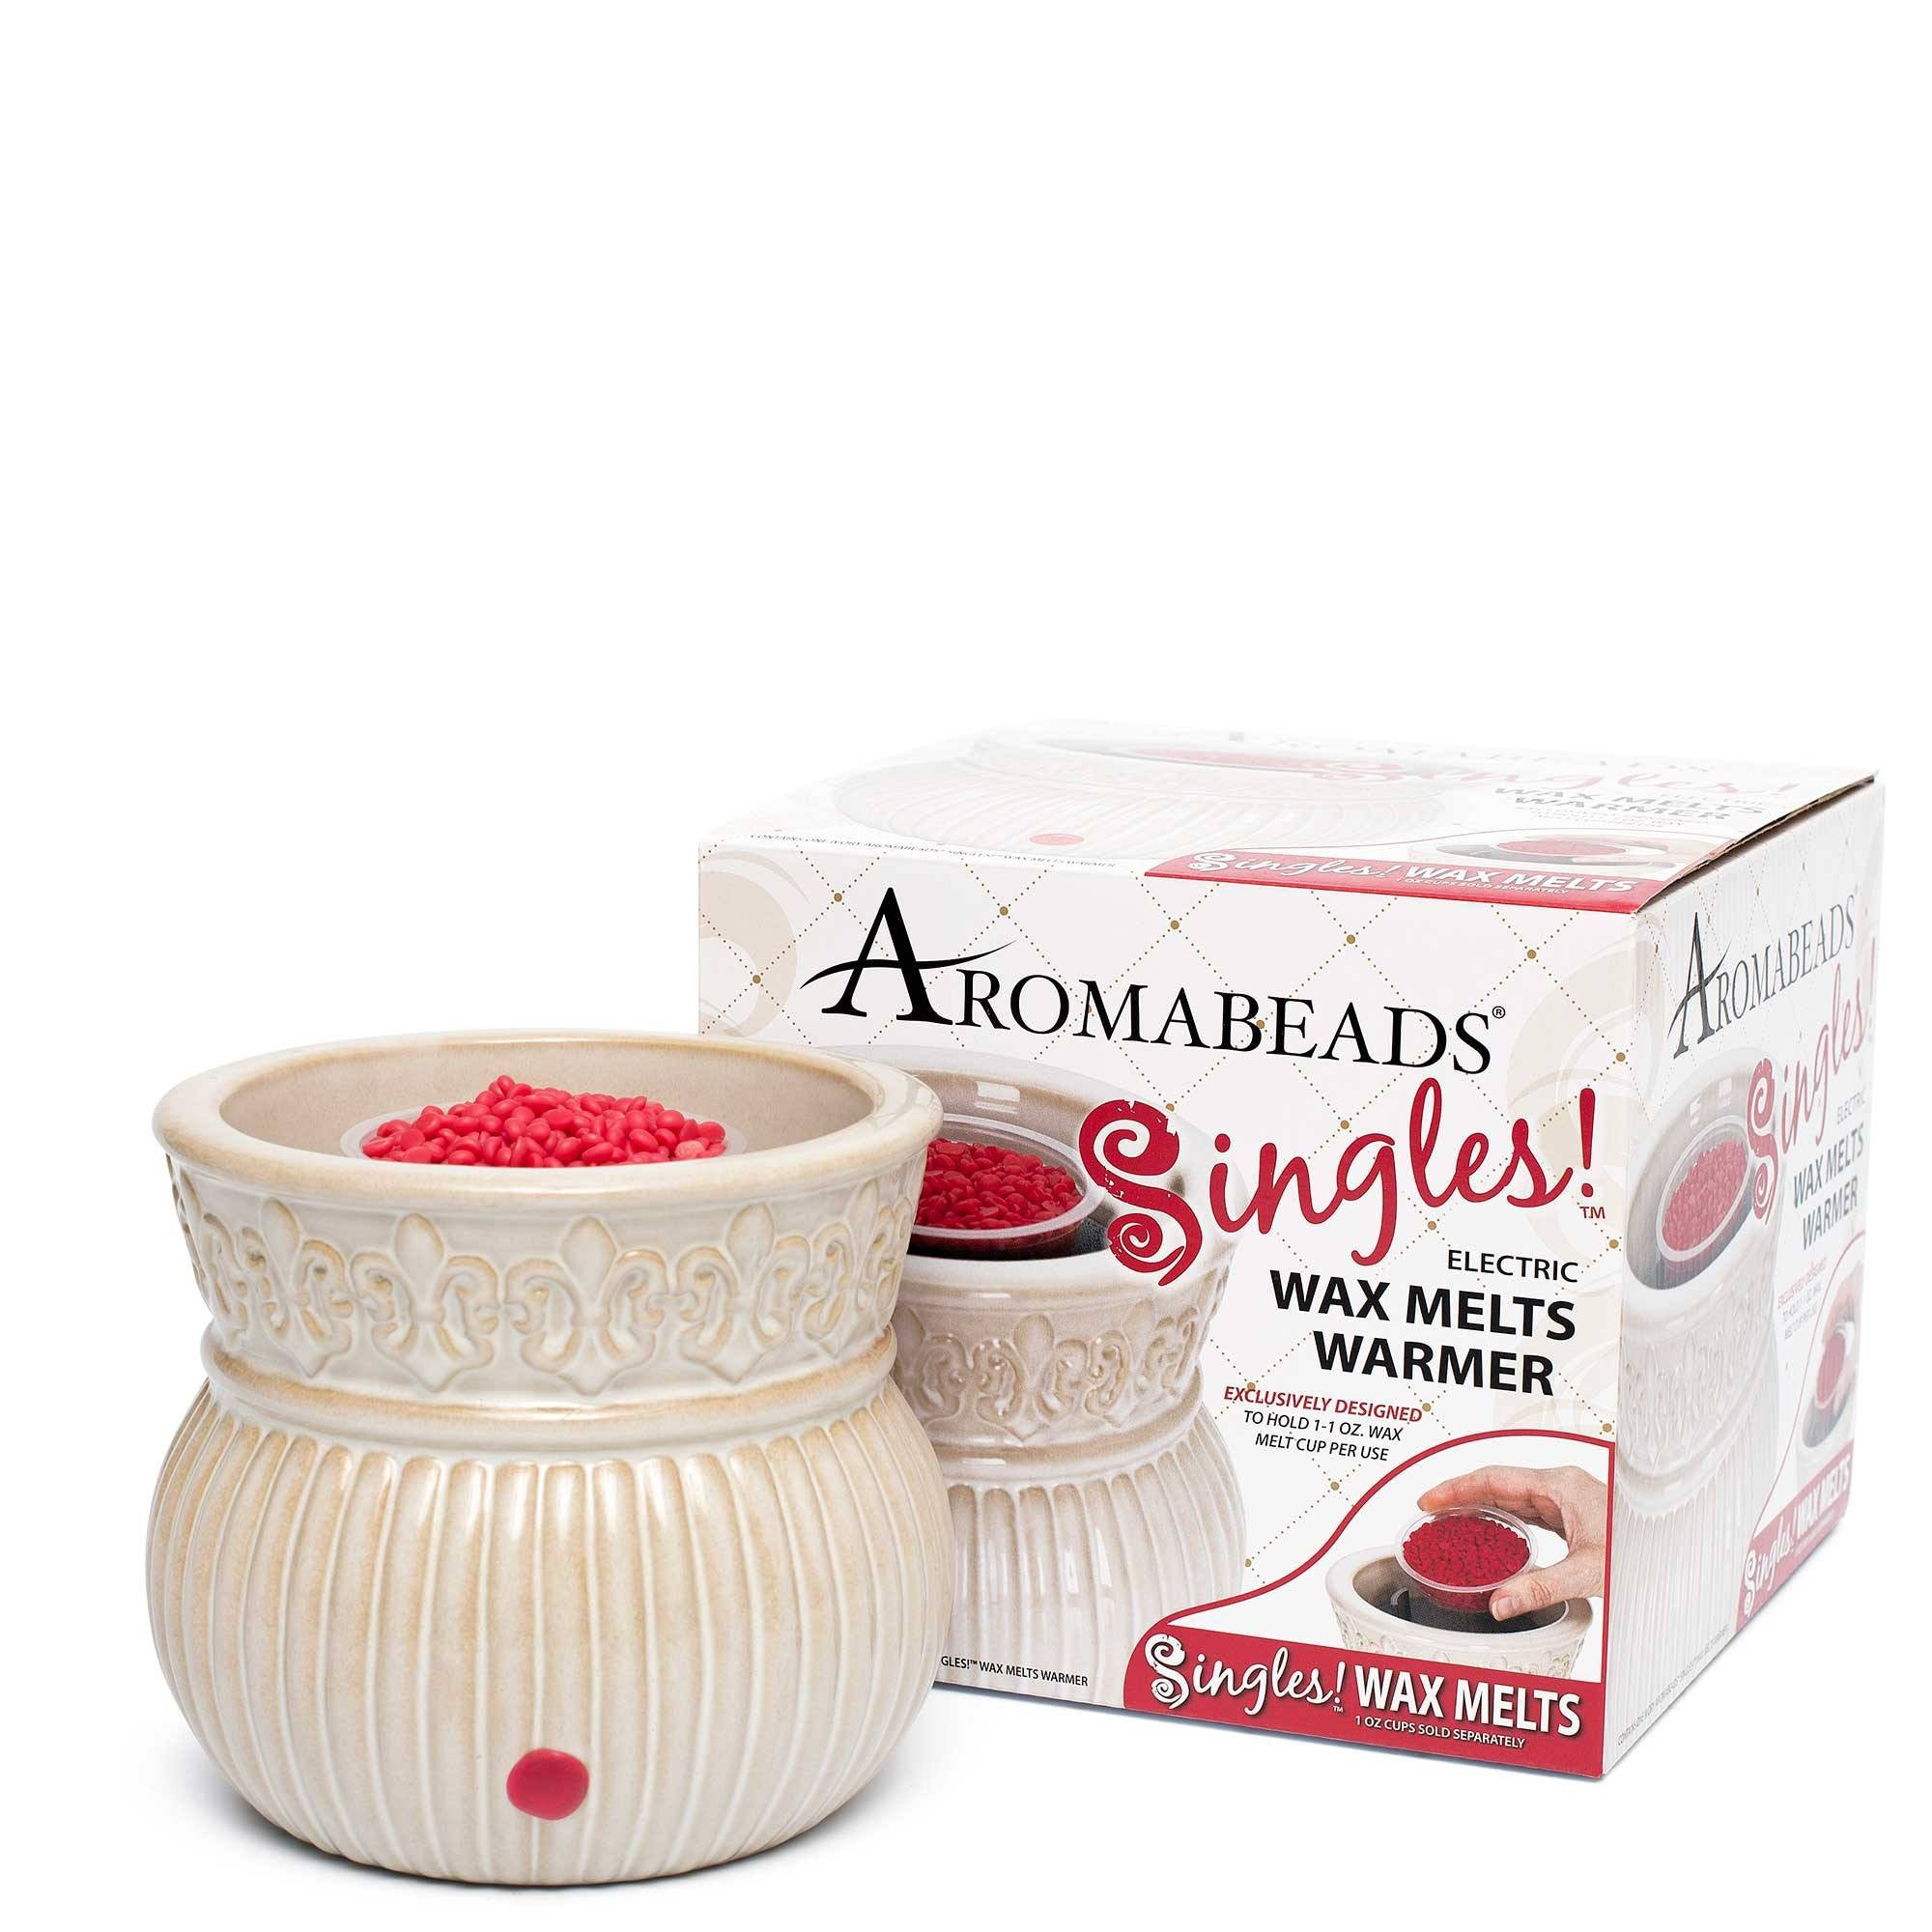 Aromabeads Singles Coral Honeysuckle Scented Wax Melts - Candlemart.com